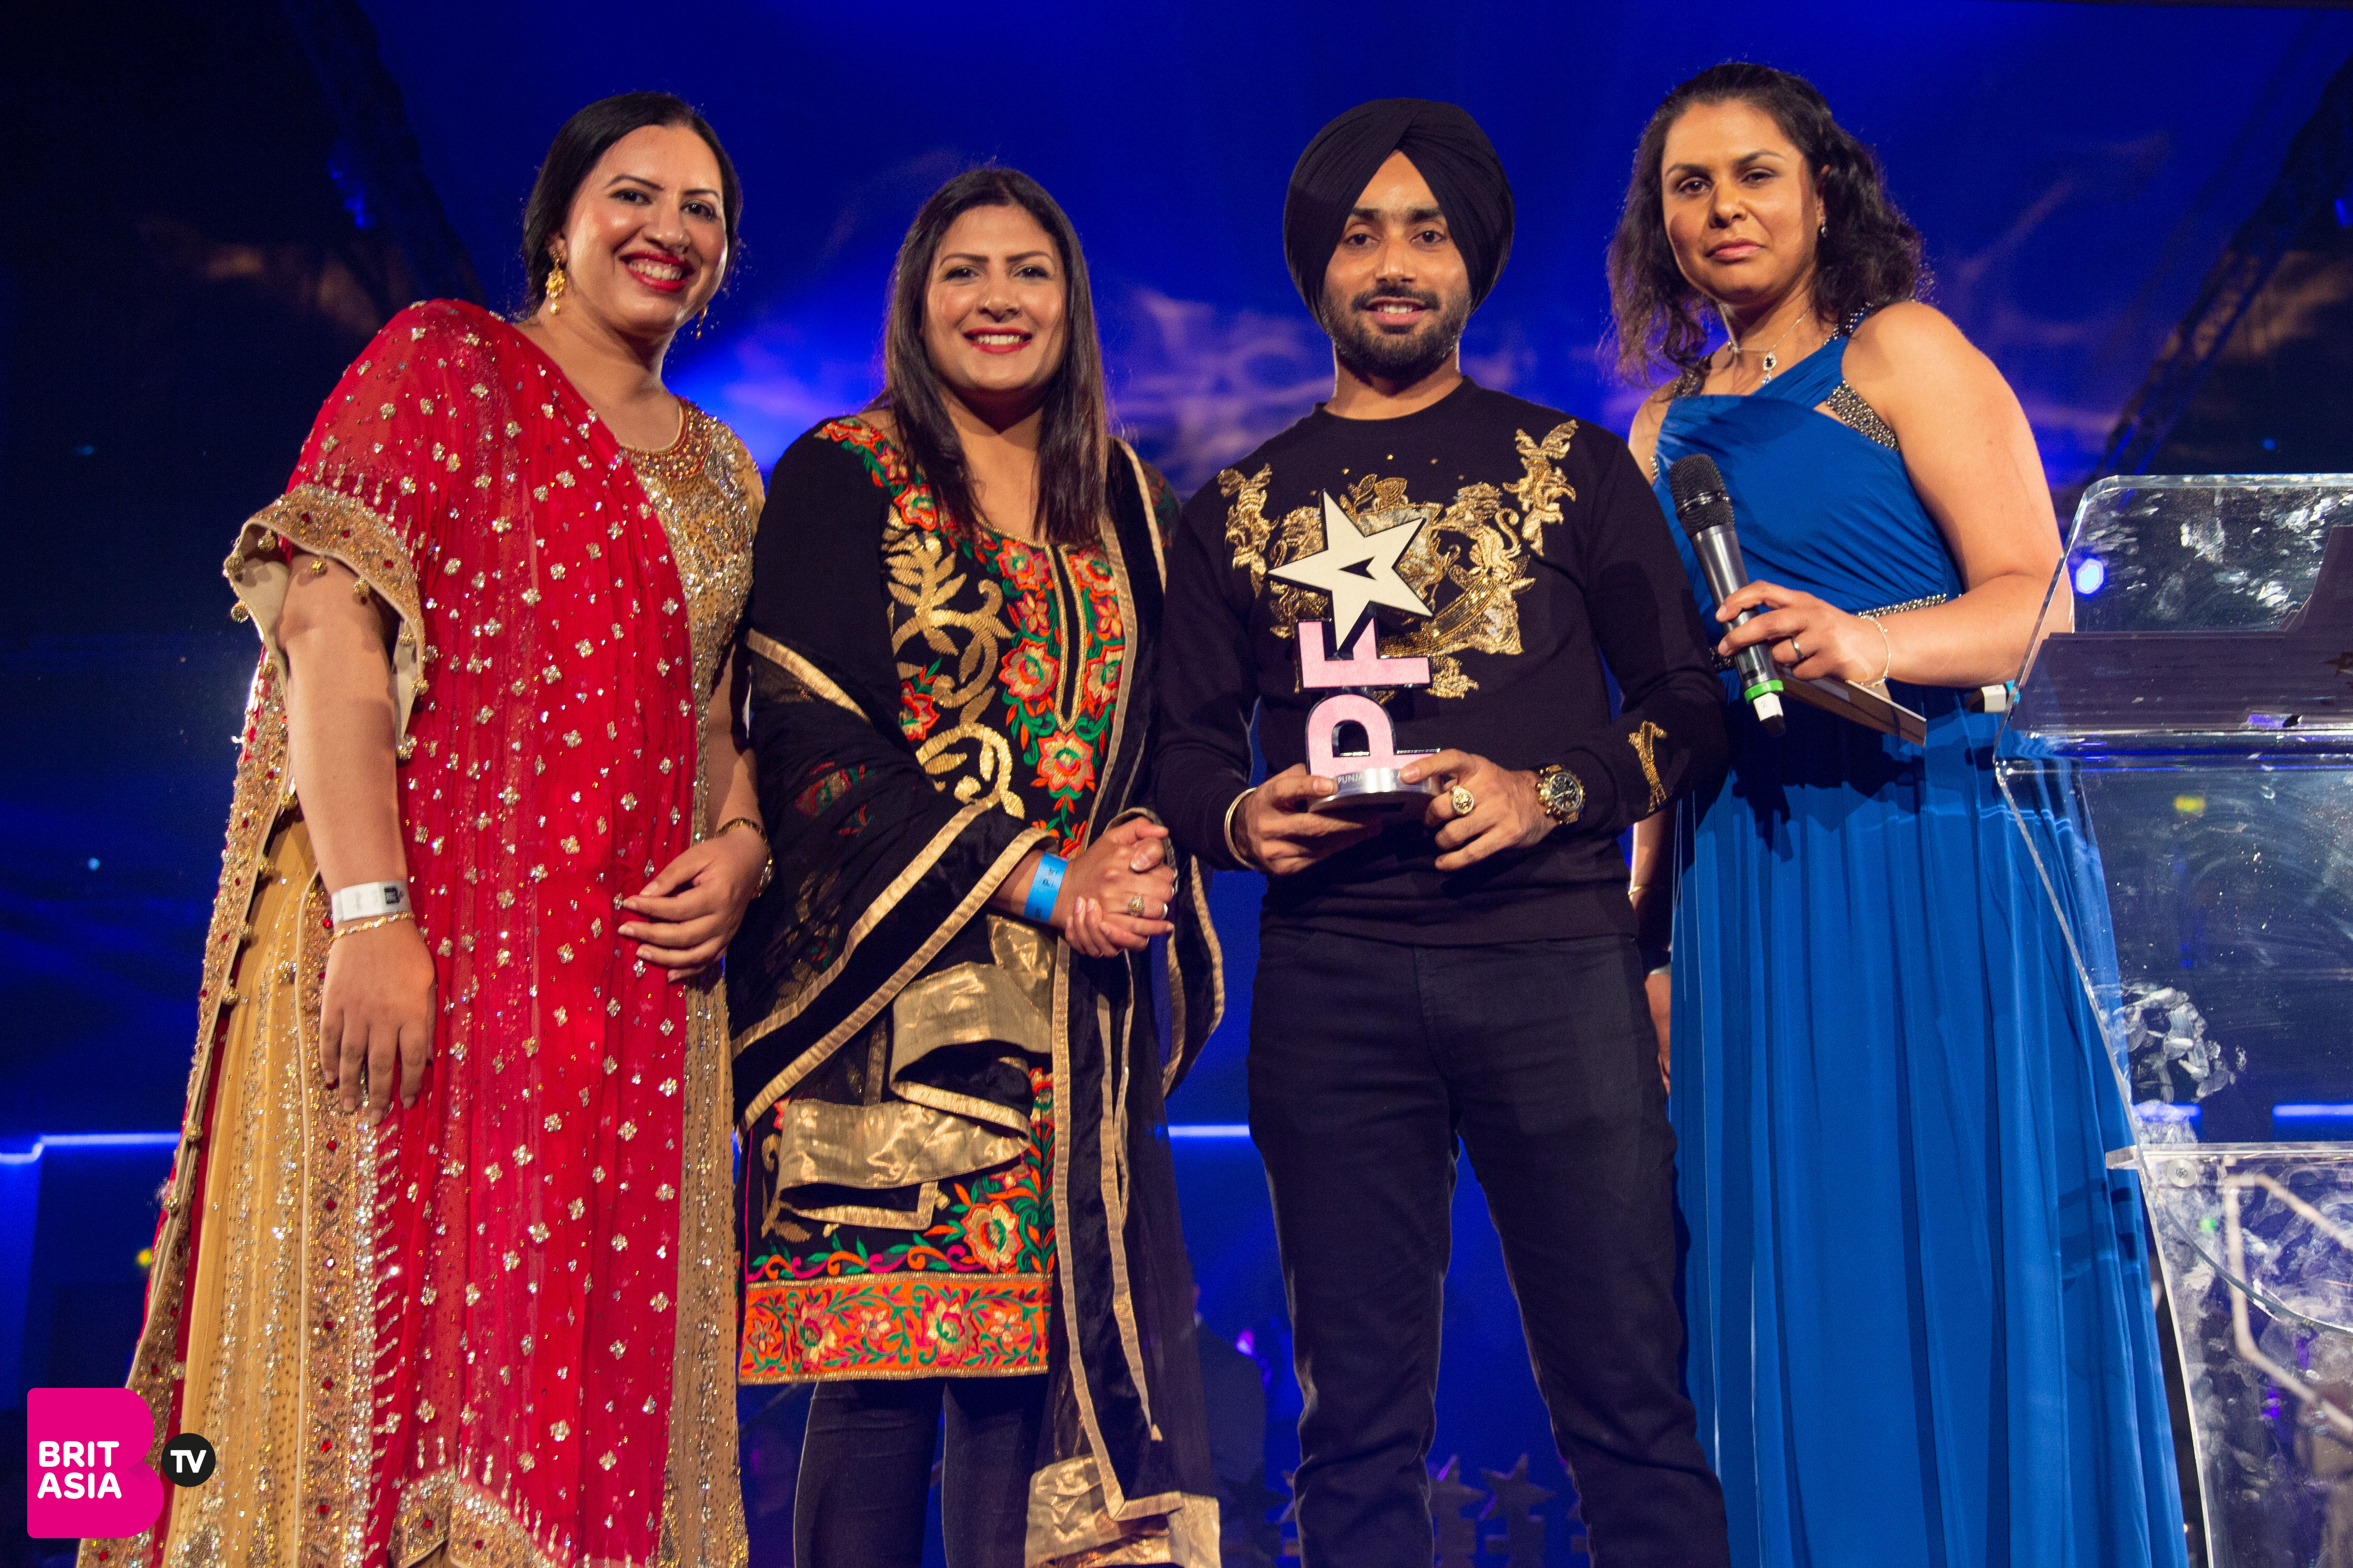 MP Preet Gill with sponsors West Midlands Police presenting an award to Satinder Sartaaj for Outstanding Achievement